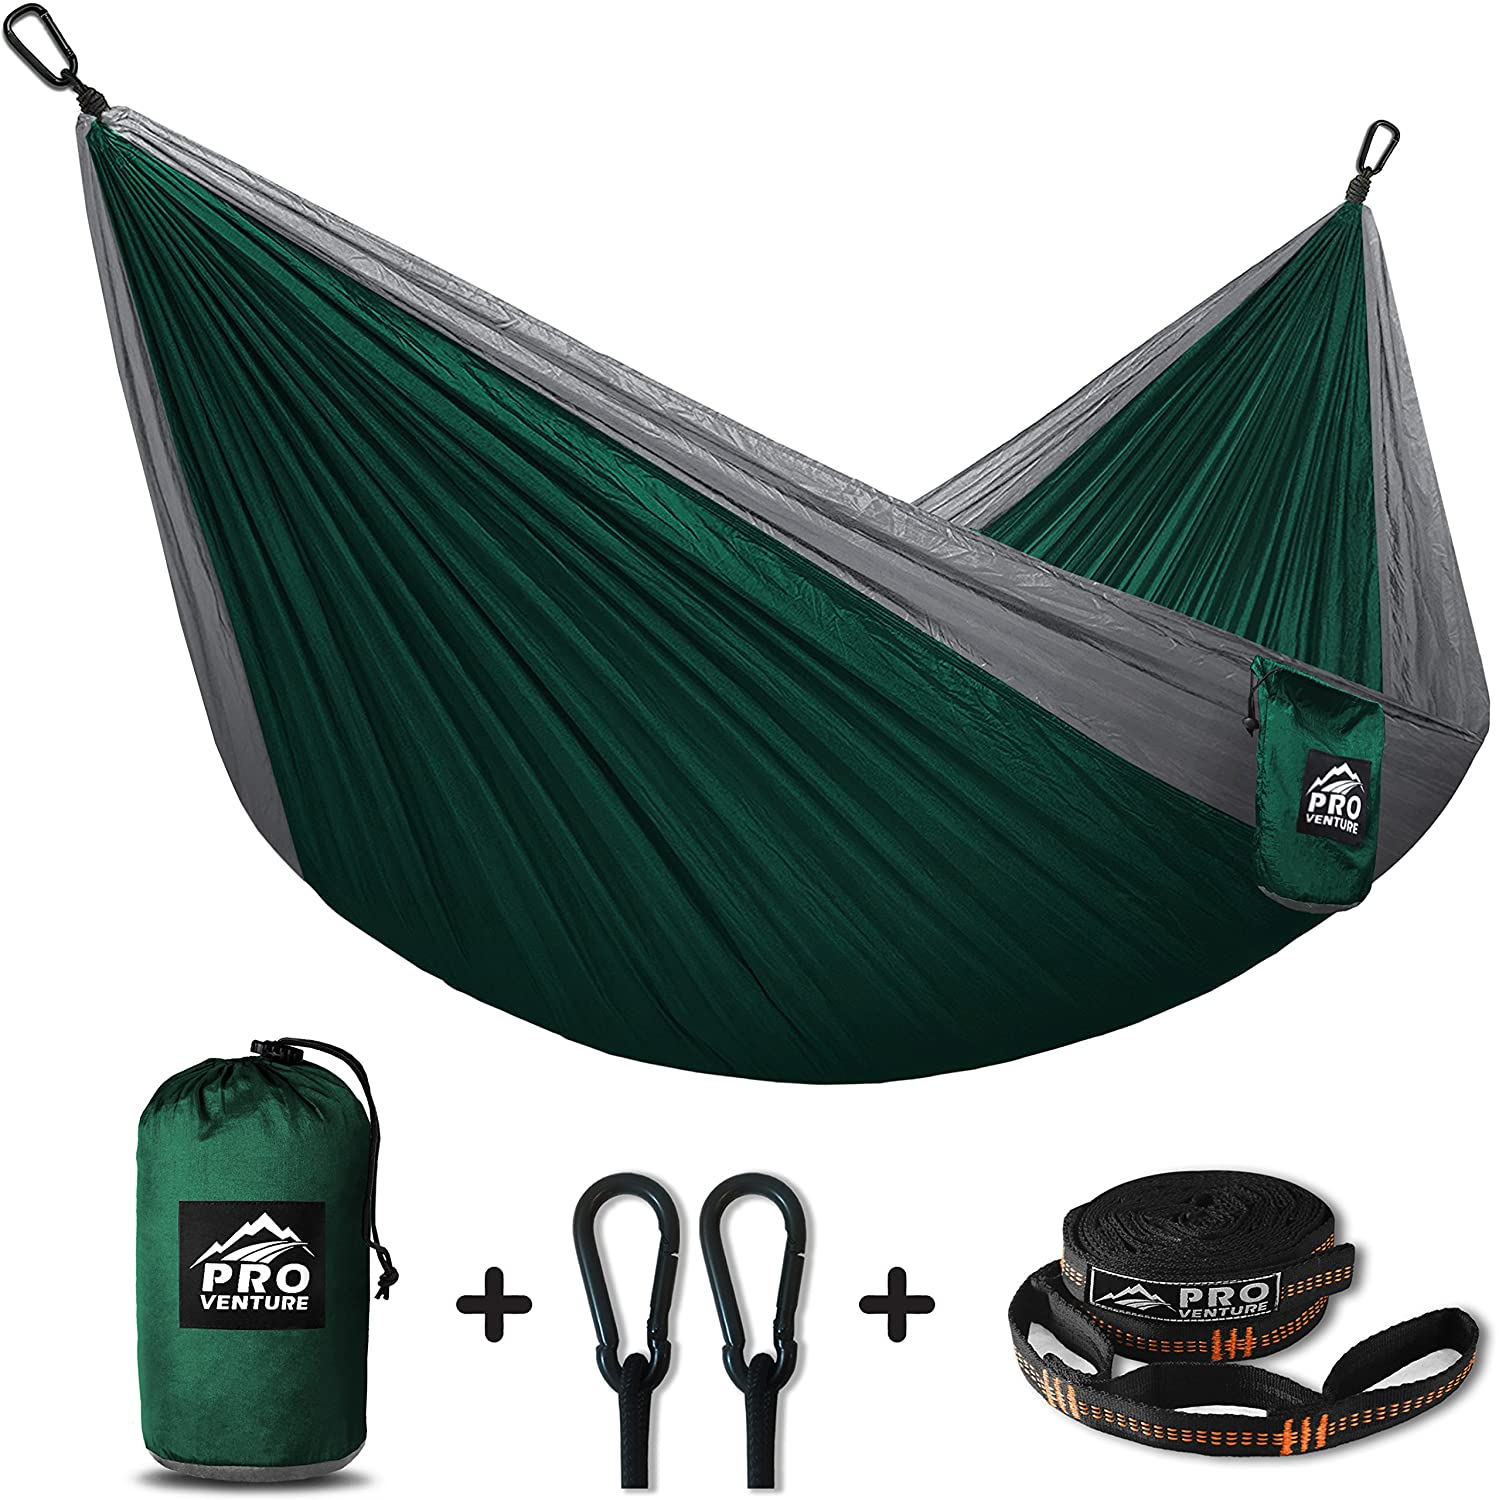 Proventure Camping Hammock /& FREE Tree Straps Lightweight and Compact For Backpacking Travel Back Yard the Beach or Any Adventure!